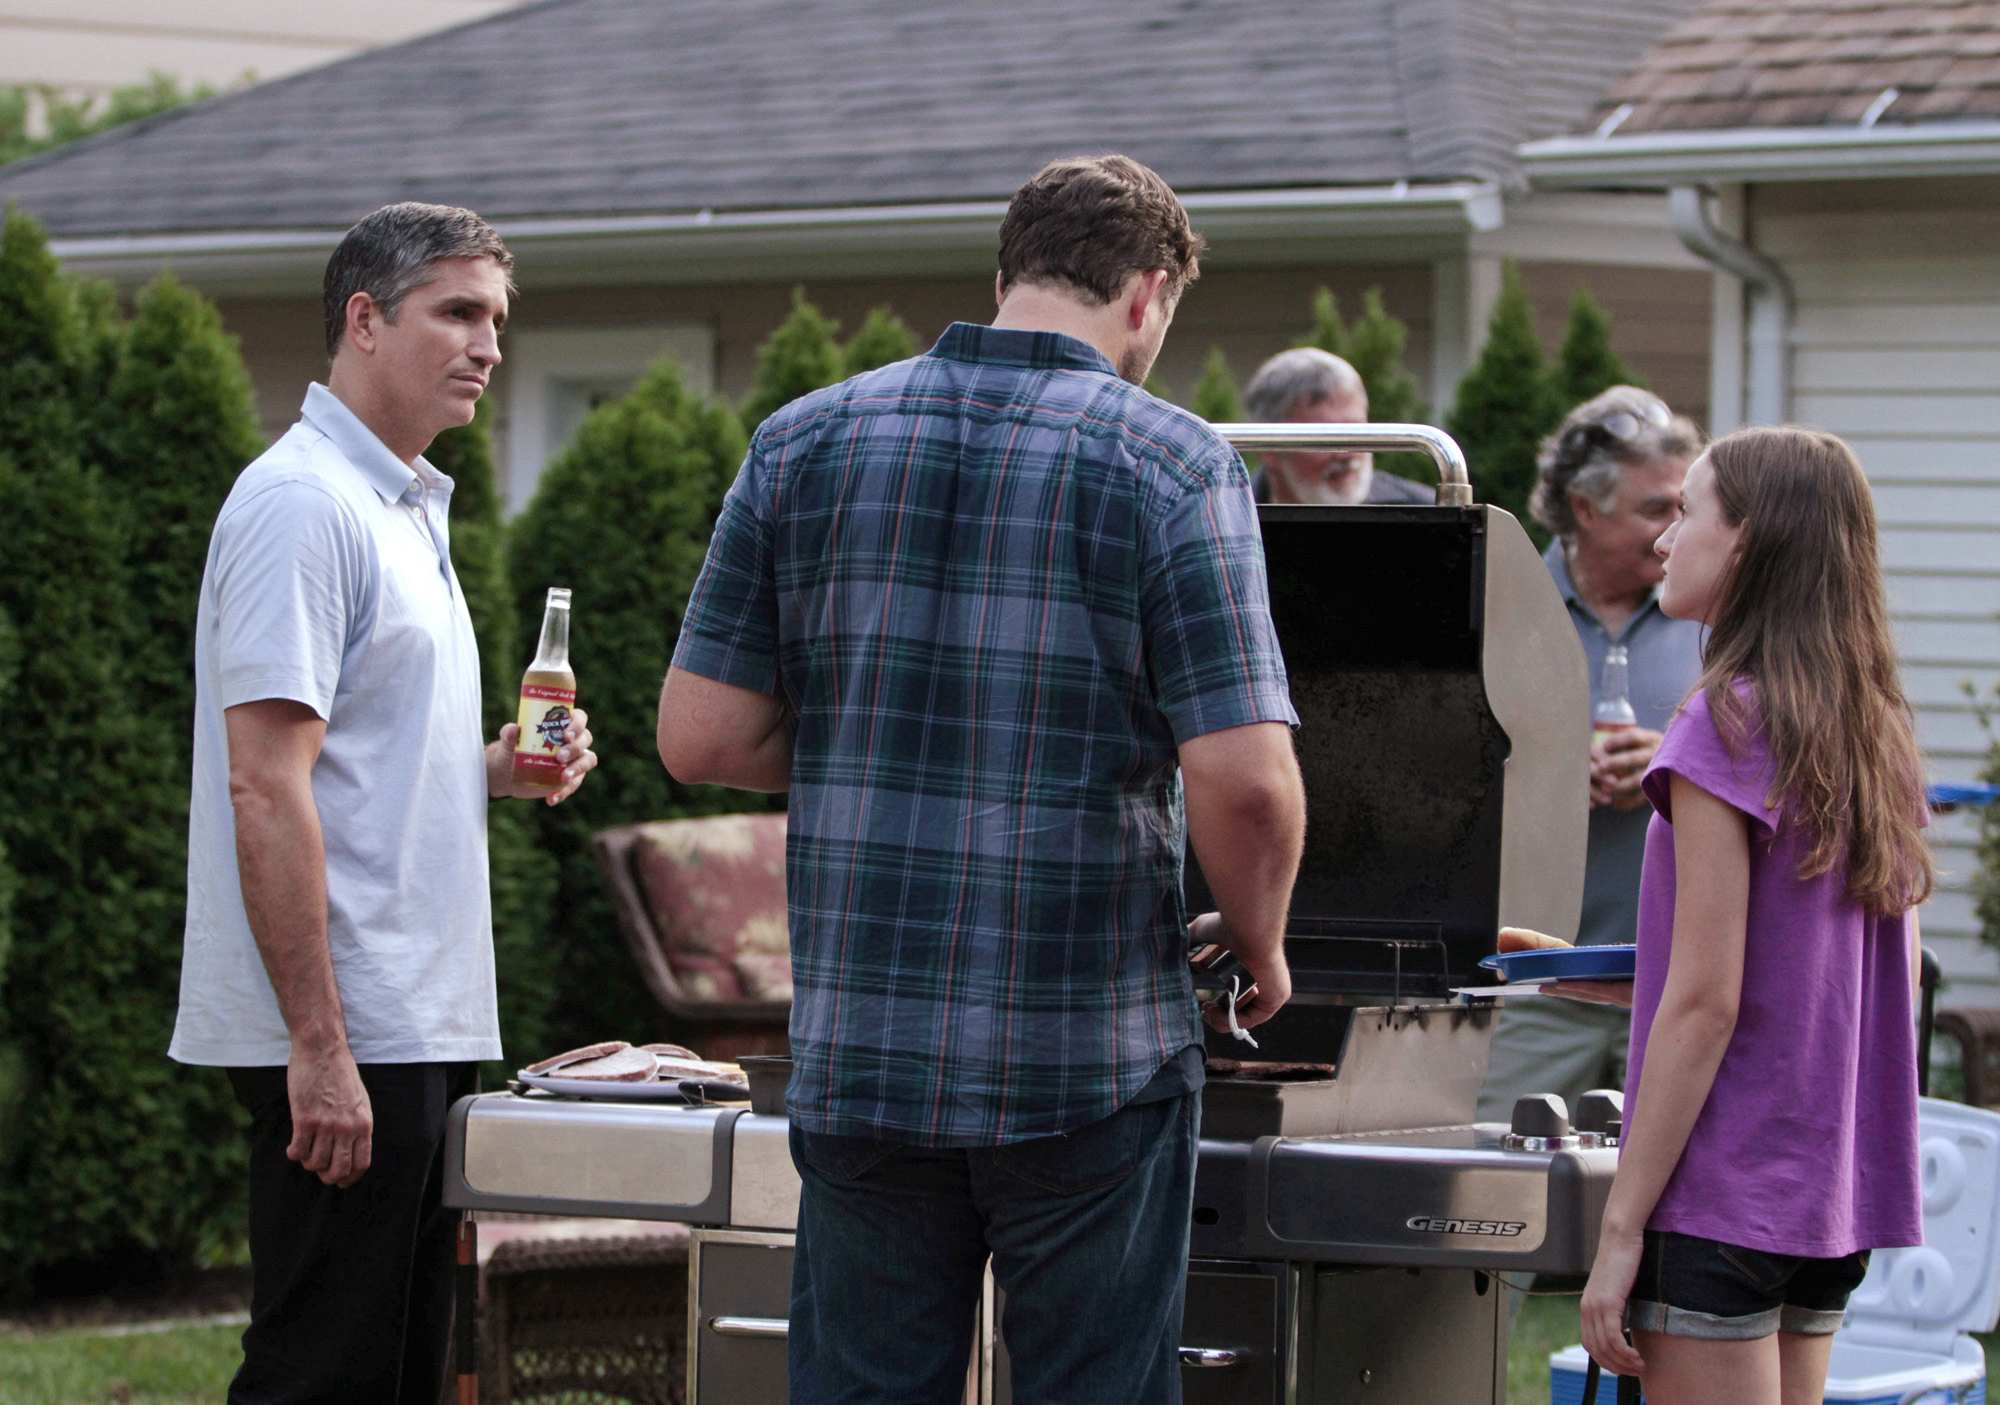 Reese Has a Beer by the Grill